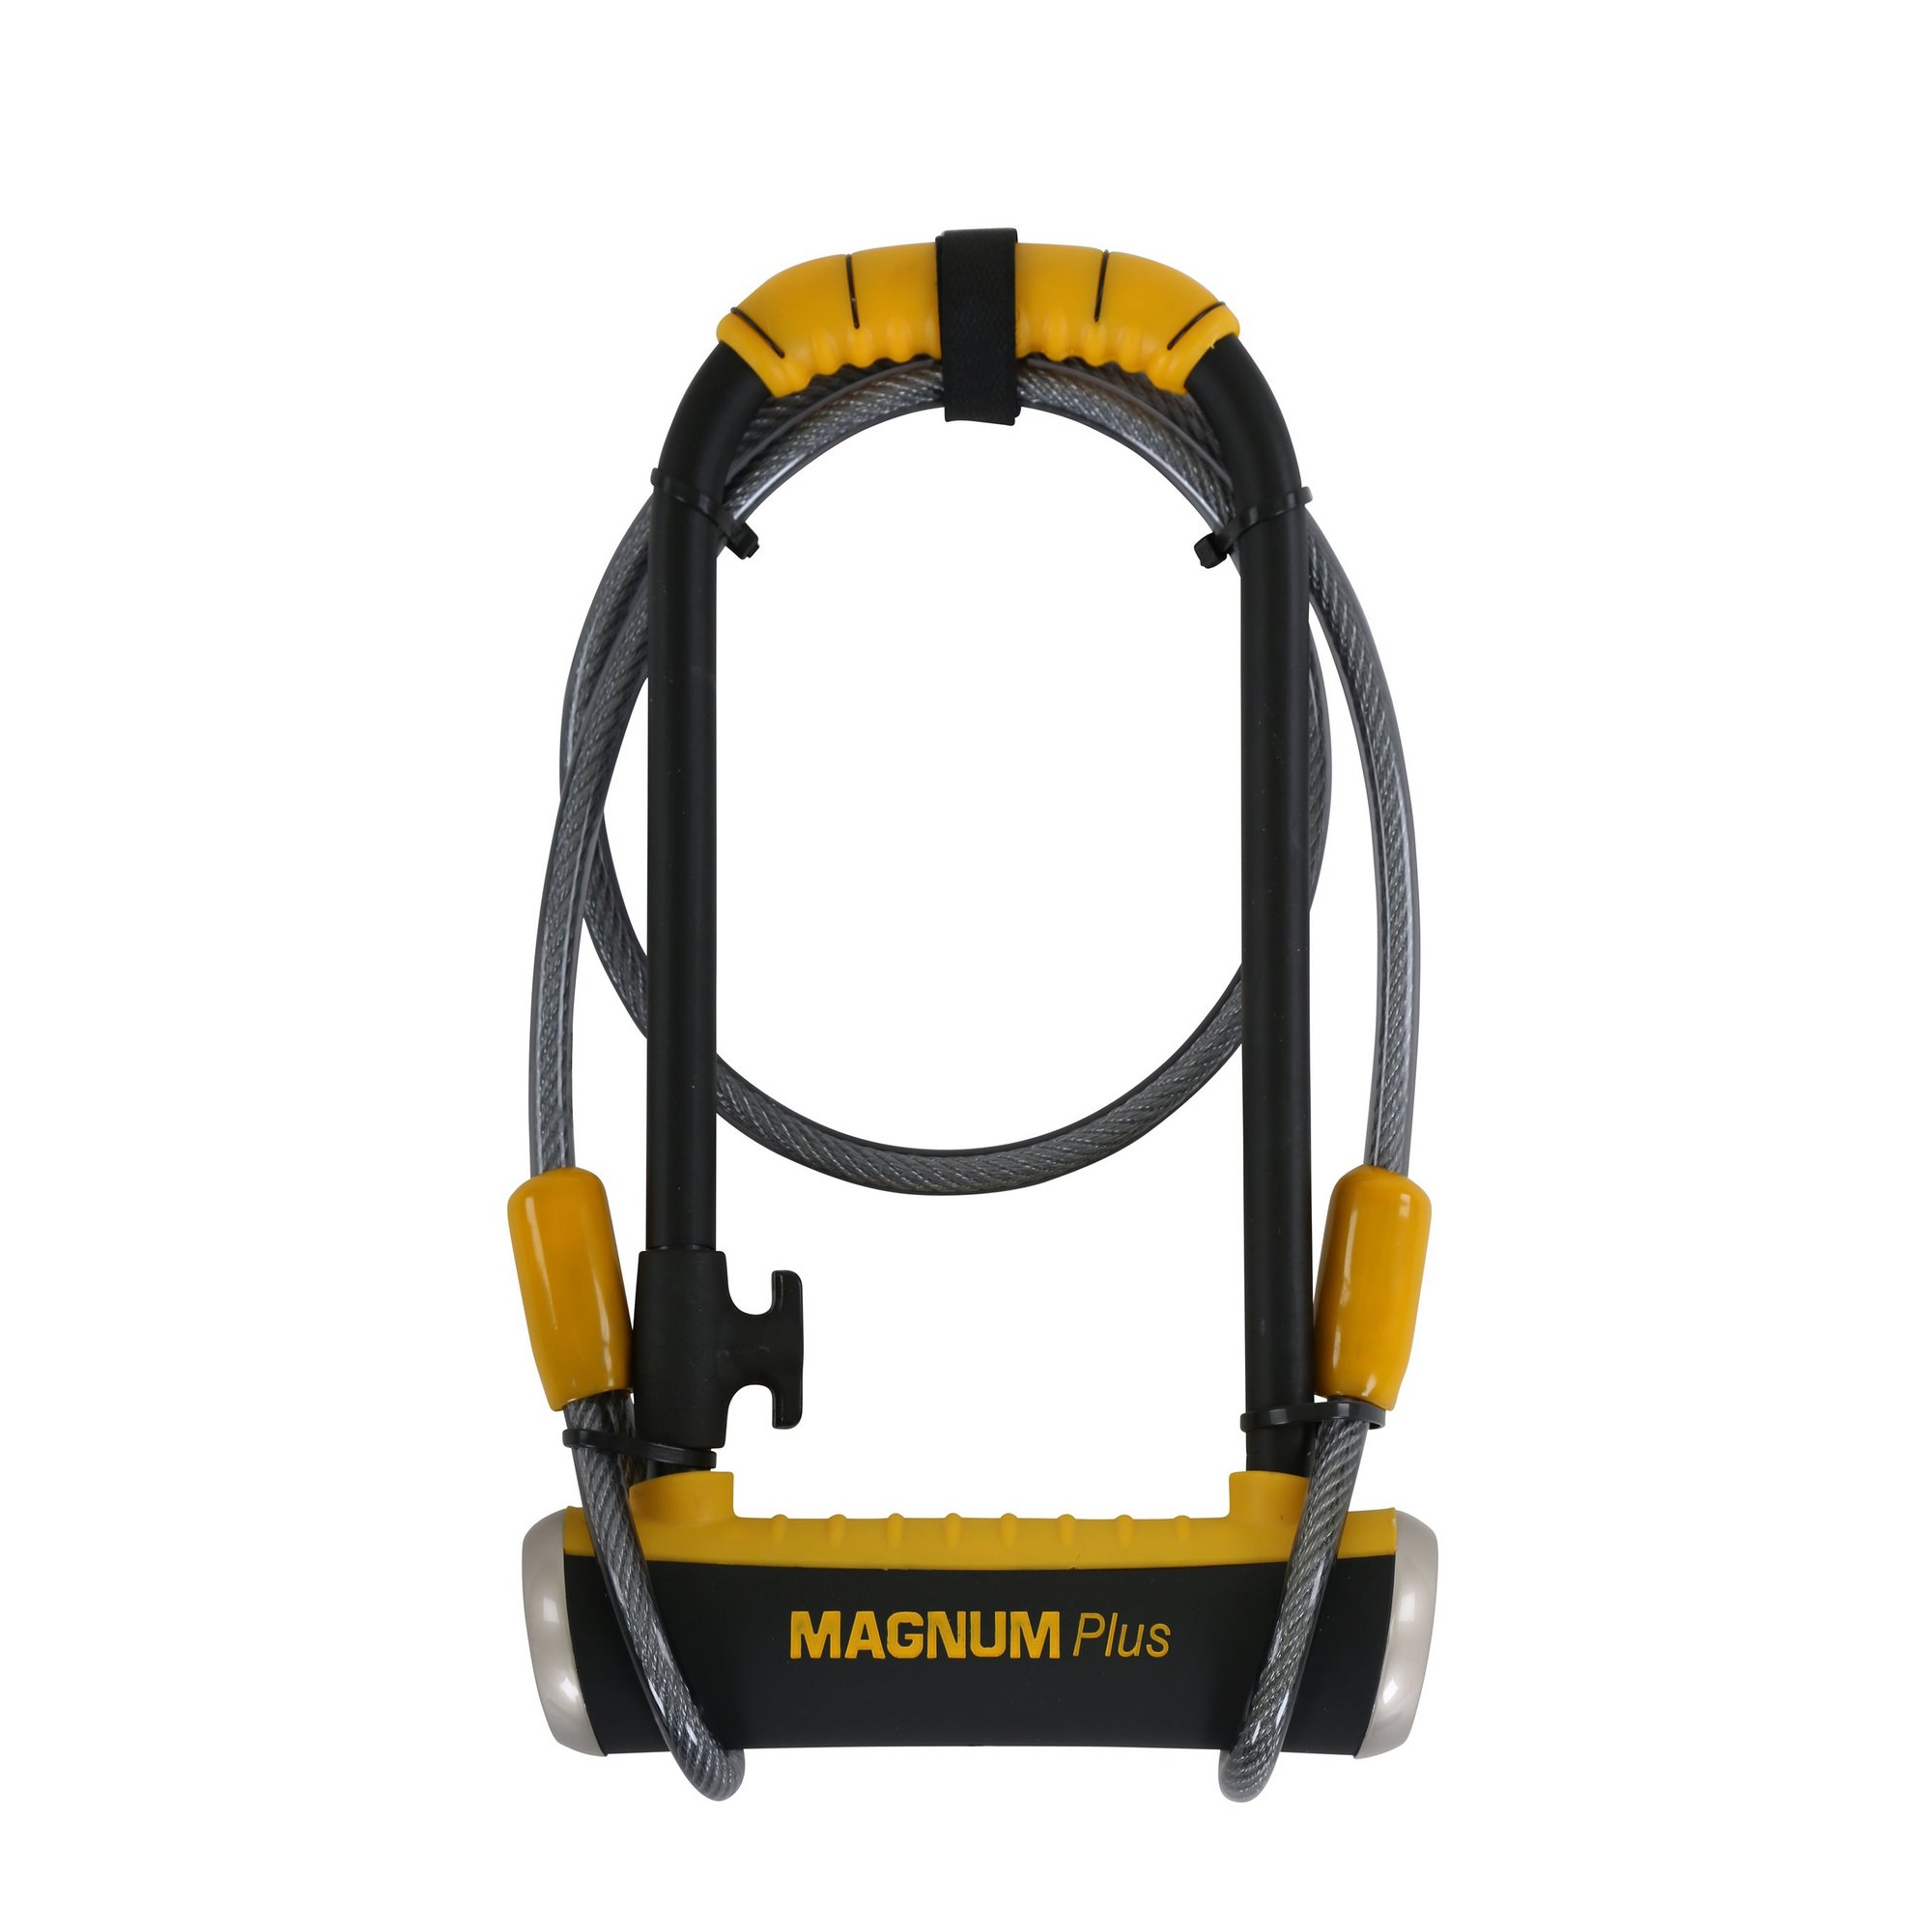 Image of Magnum Plus MagSolid Shackle Key Lock - 115 x 230 x 14mm with Cable